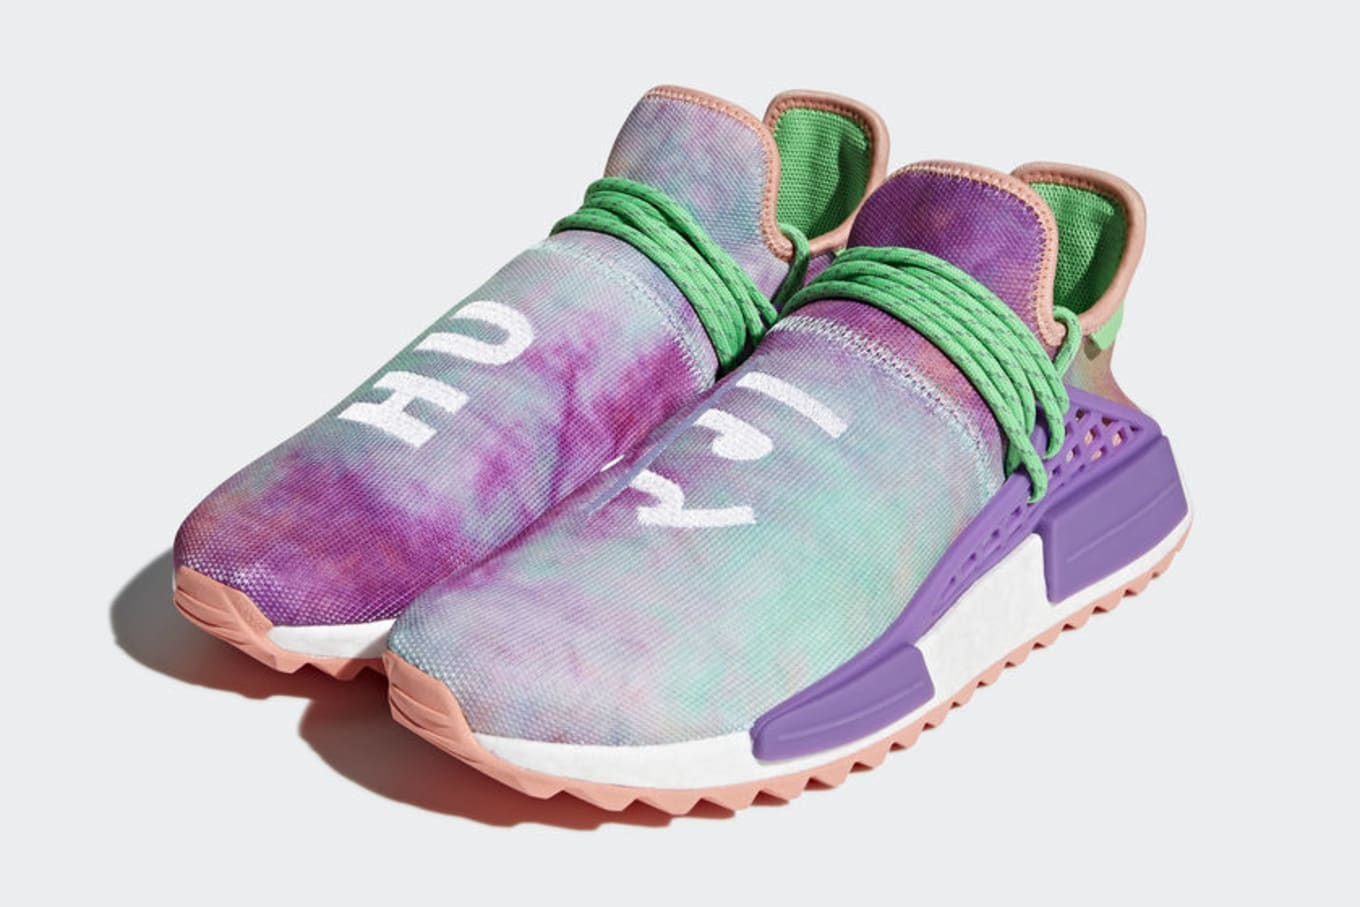 quality design 0a13b 03bd9 adidas HU NMD x Pharrell Williams